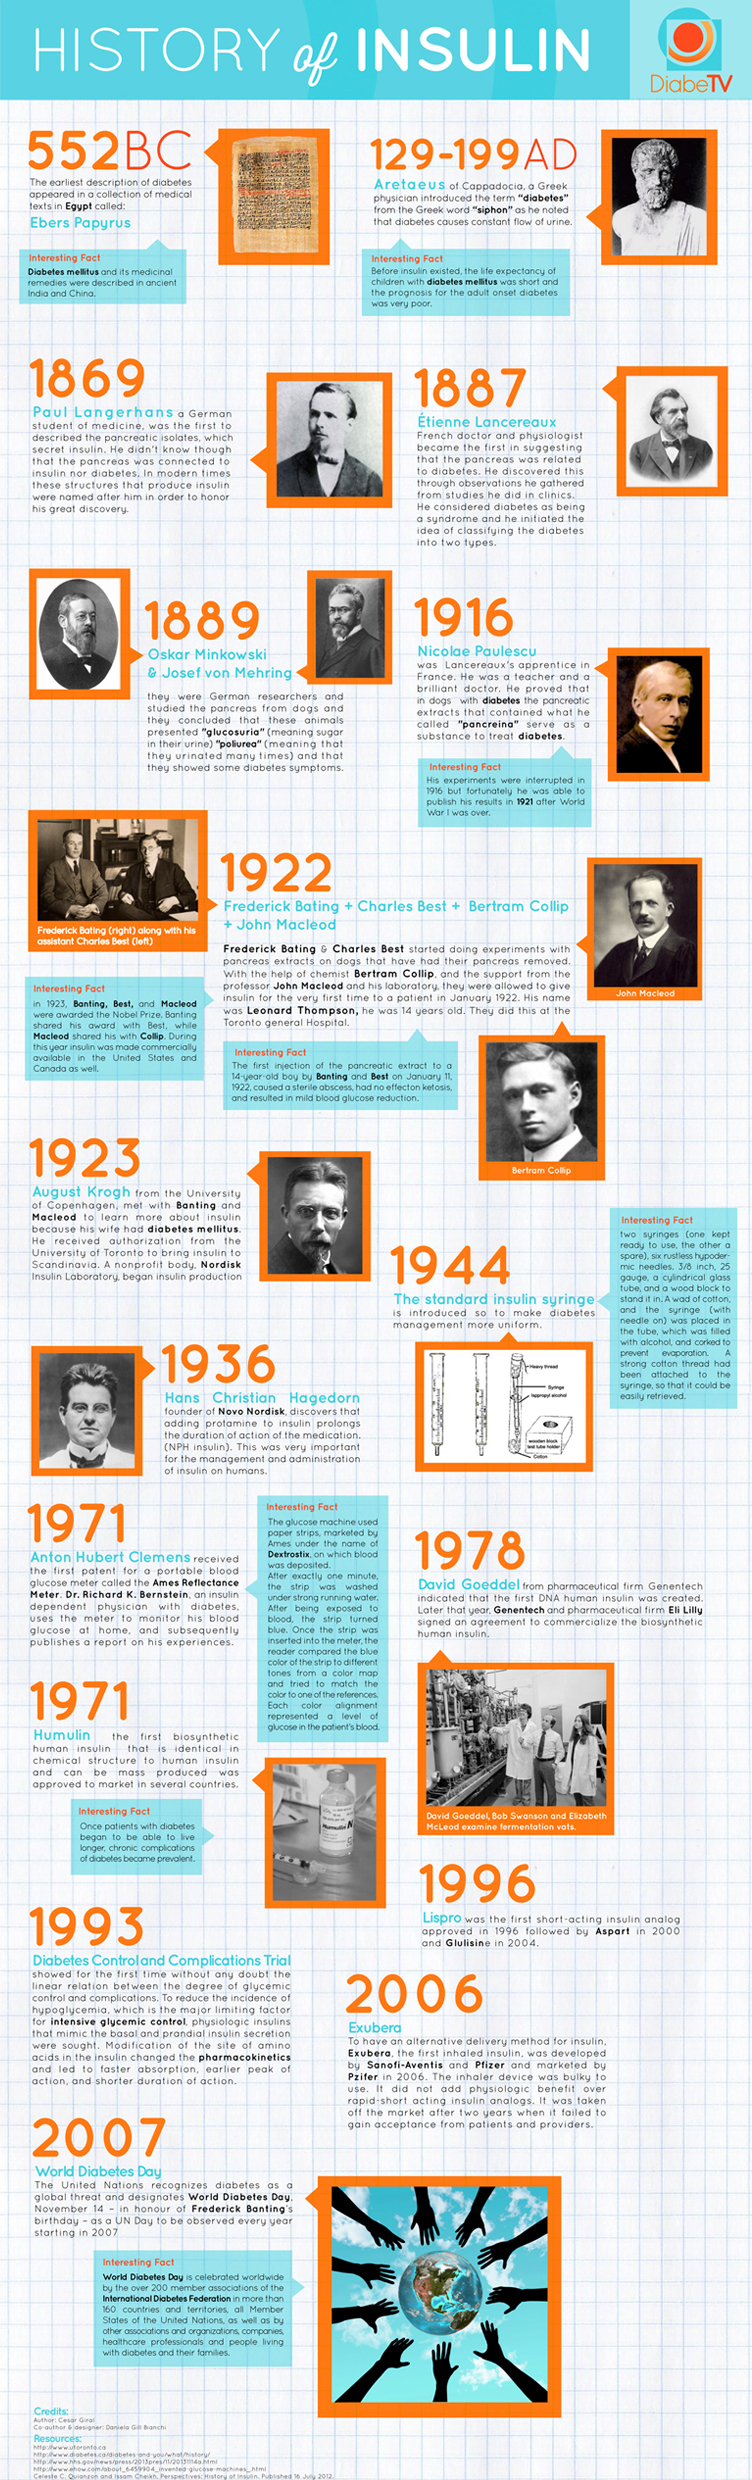 Infographic for The History of Insulin